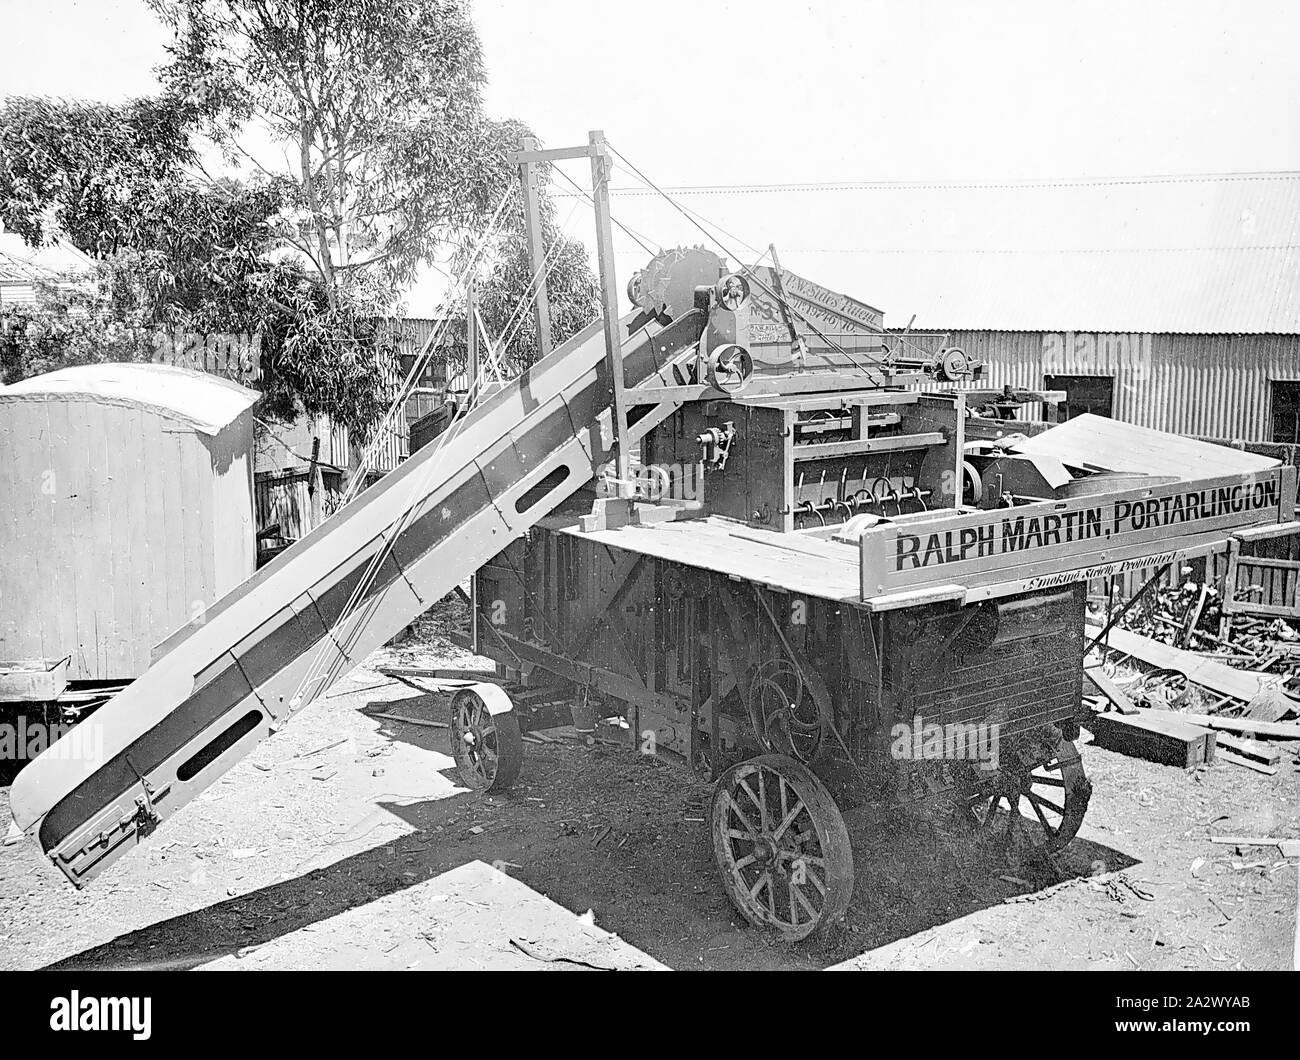 Negative - Threshing Machine, Ralph Martin, Portarlington, Victoria, circa 1915, Travelling threshing machine of contractor Ralph Martin, Portarlington, Victoria. The threshing machine is fitted with a patent sheaf elevator and feeder labelled P.W. Sides' Patent, No.19746/10. No.3, Sawmill, ???, Geelong. The is a living van with a curved roof visible in the background Stock Photo